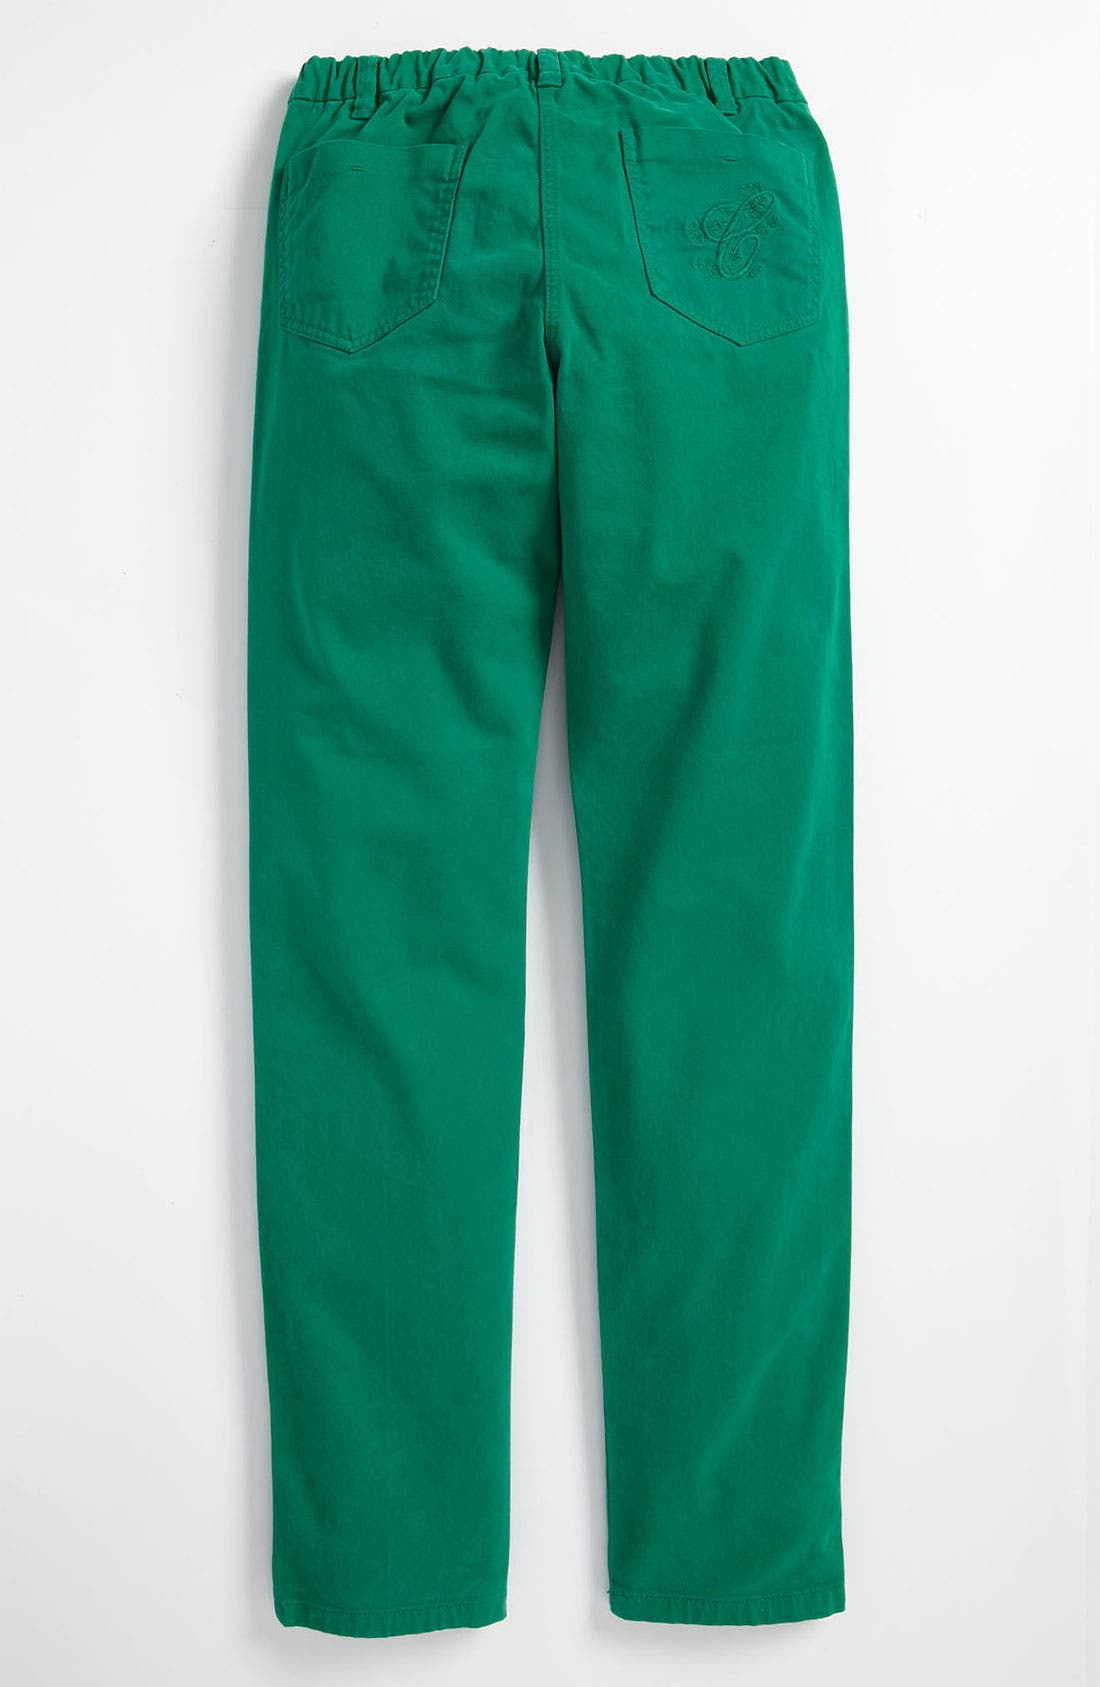 Alternate Image 1 Selected - Chloé Stretch Leggings (Little Girls & Big Girls)